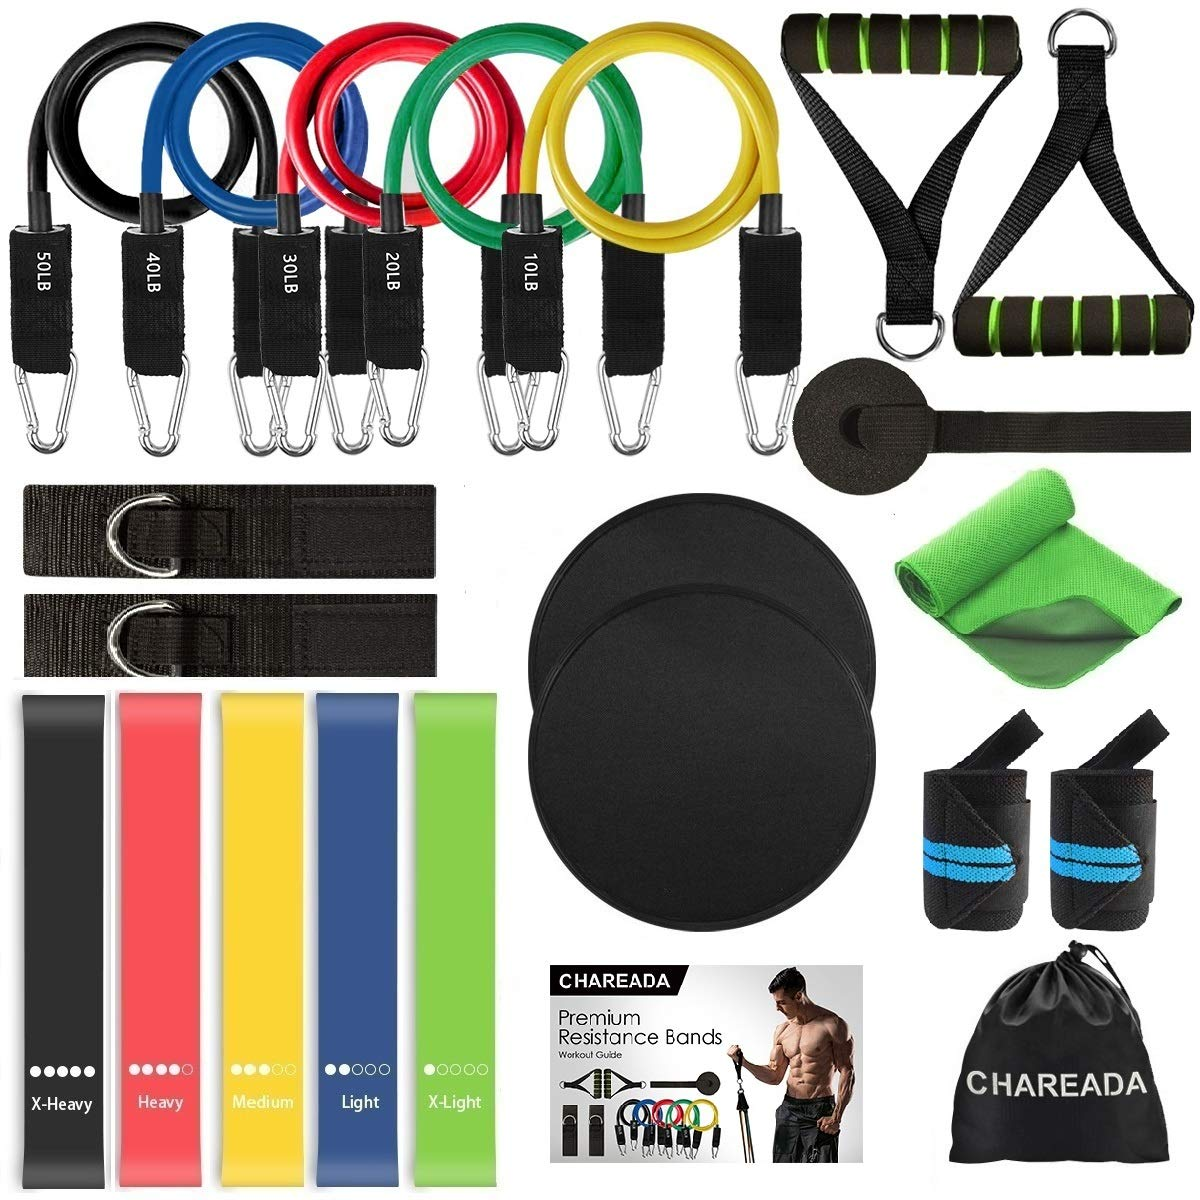 CHAREADA 22 Pack Resistance Bands Set Workout Bands, 5 Stackable Exercise Bands 5 Loop Resistance Bands 2 Core Sliders – Door Anchor Handles Ankle Straps Carry Bag Instant Cooling Towel Wrist Wraps